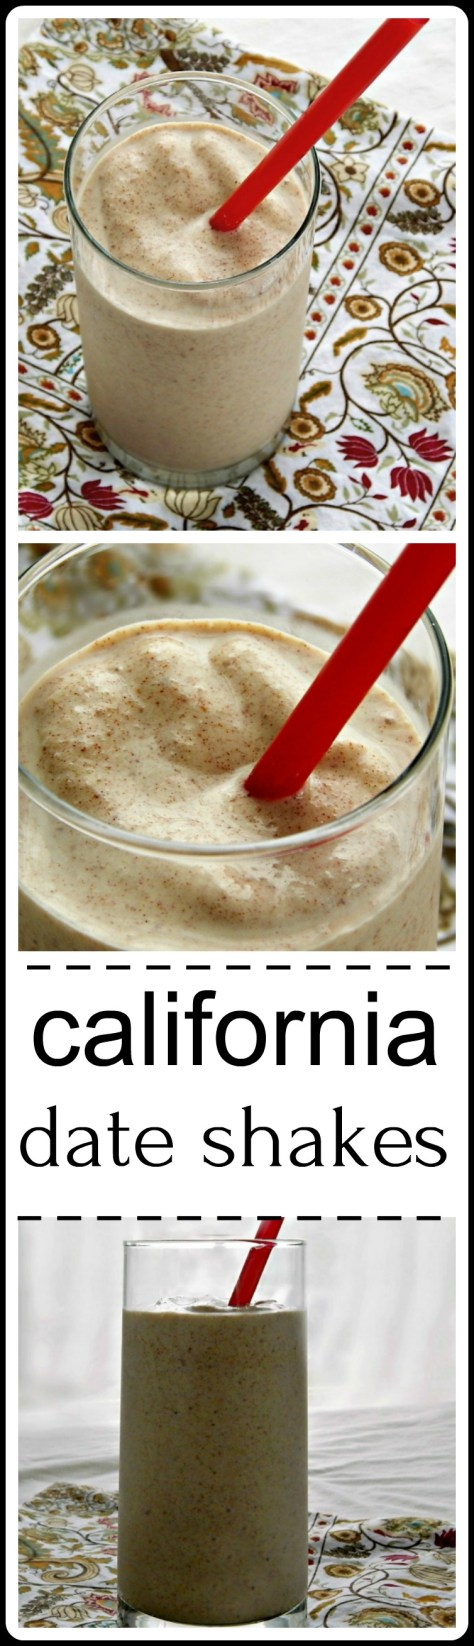 California Date Shakes - I know they sound a little weird if you didn't grow up with them, but they are AMAZING!